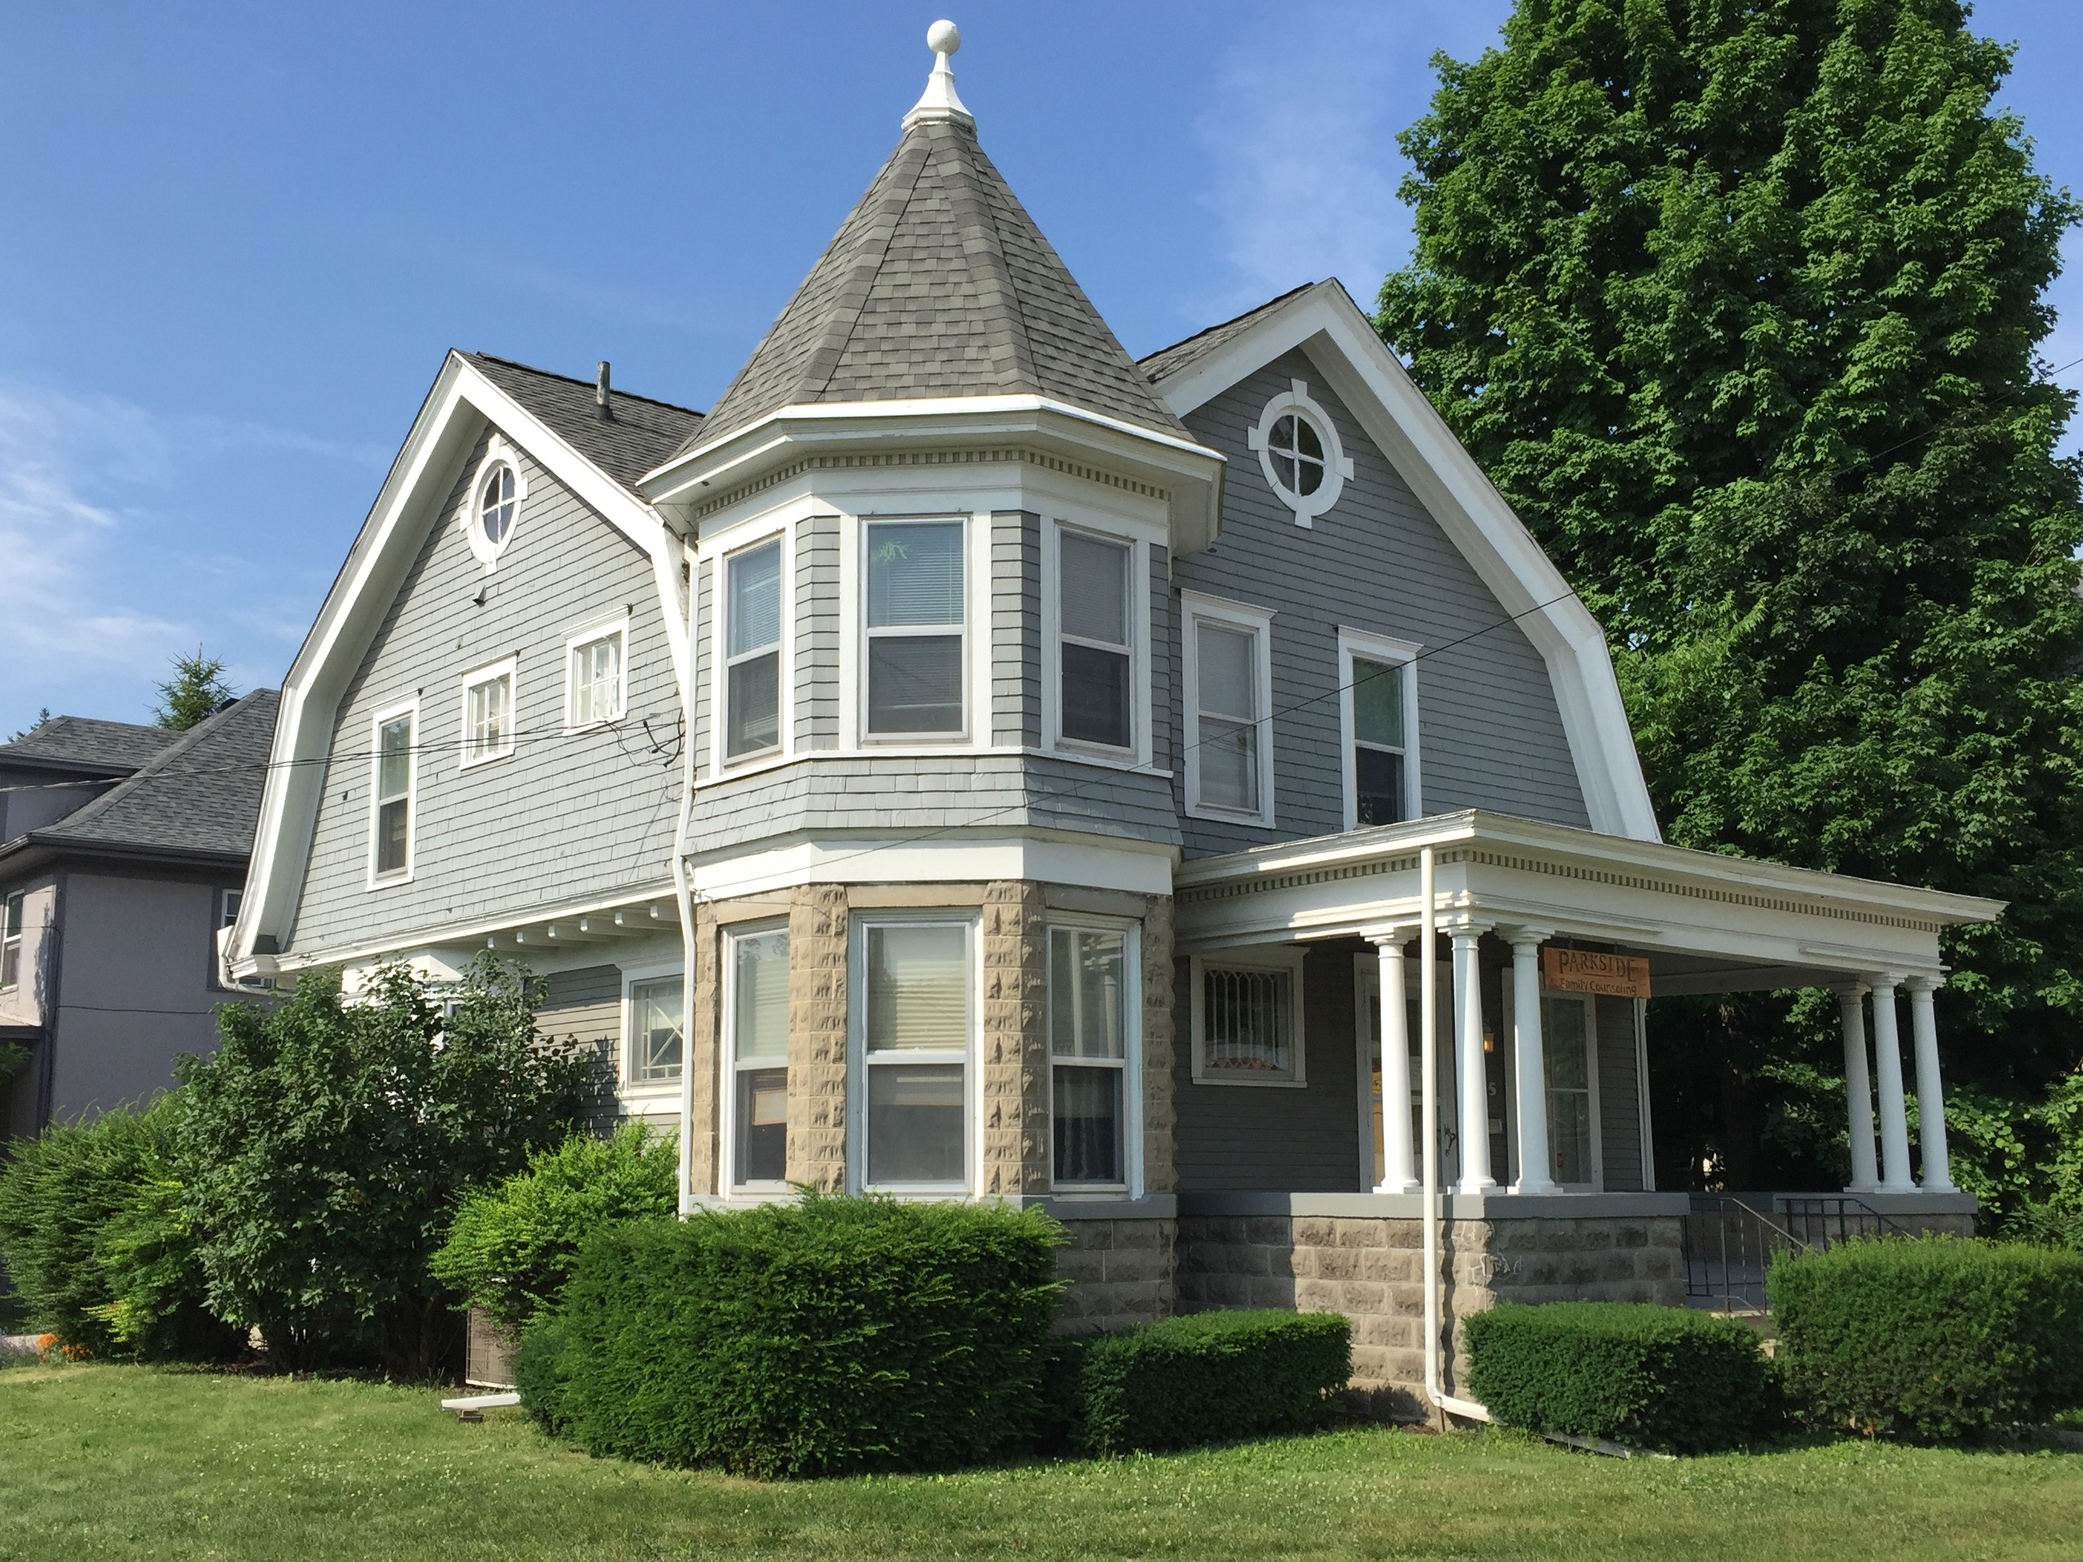 Shingle Style, Dr. E. T.Morden House, 805 West Maumee Street, c. 1905